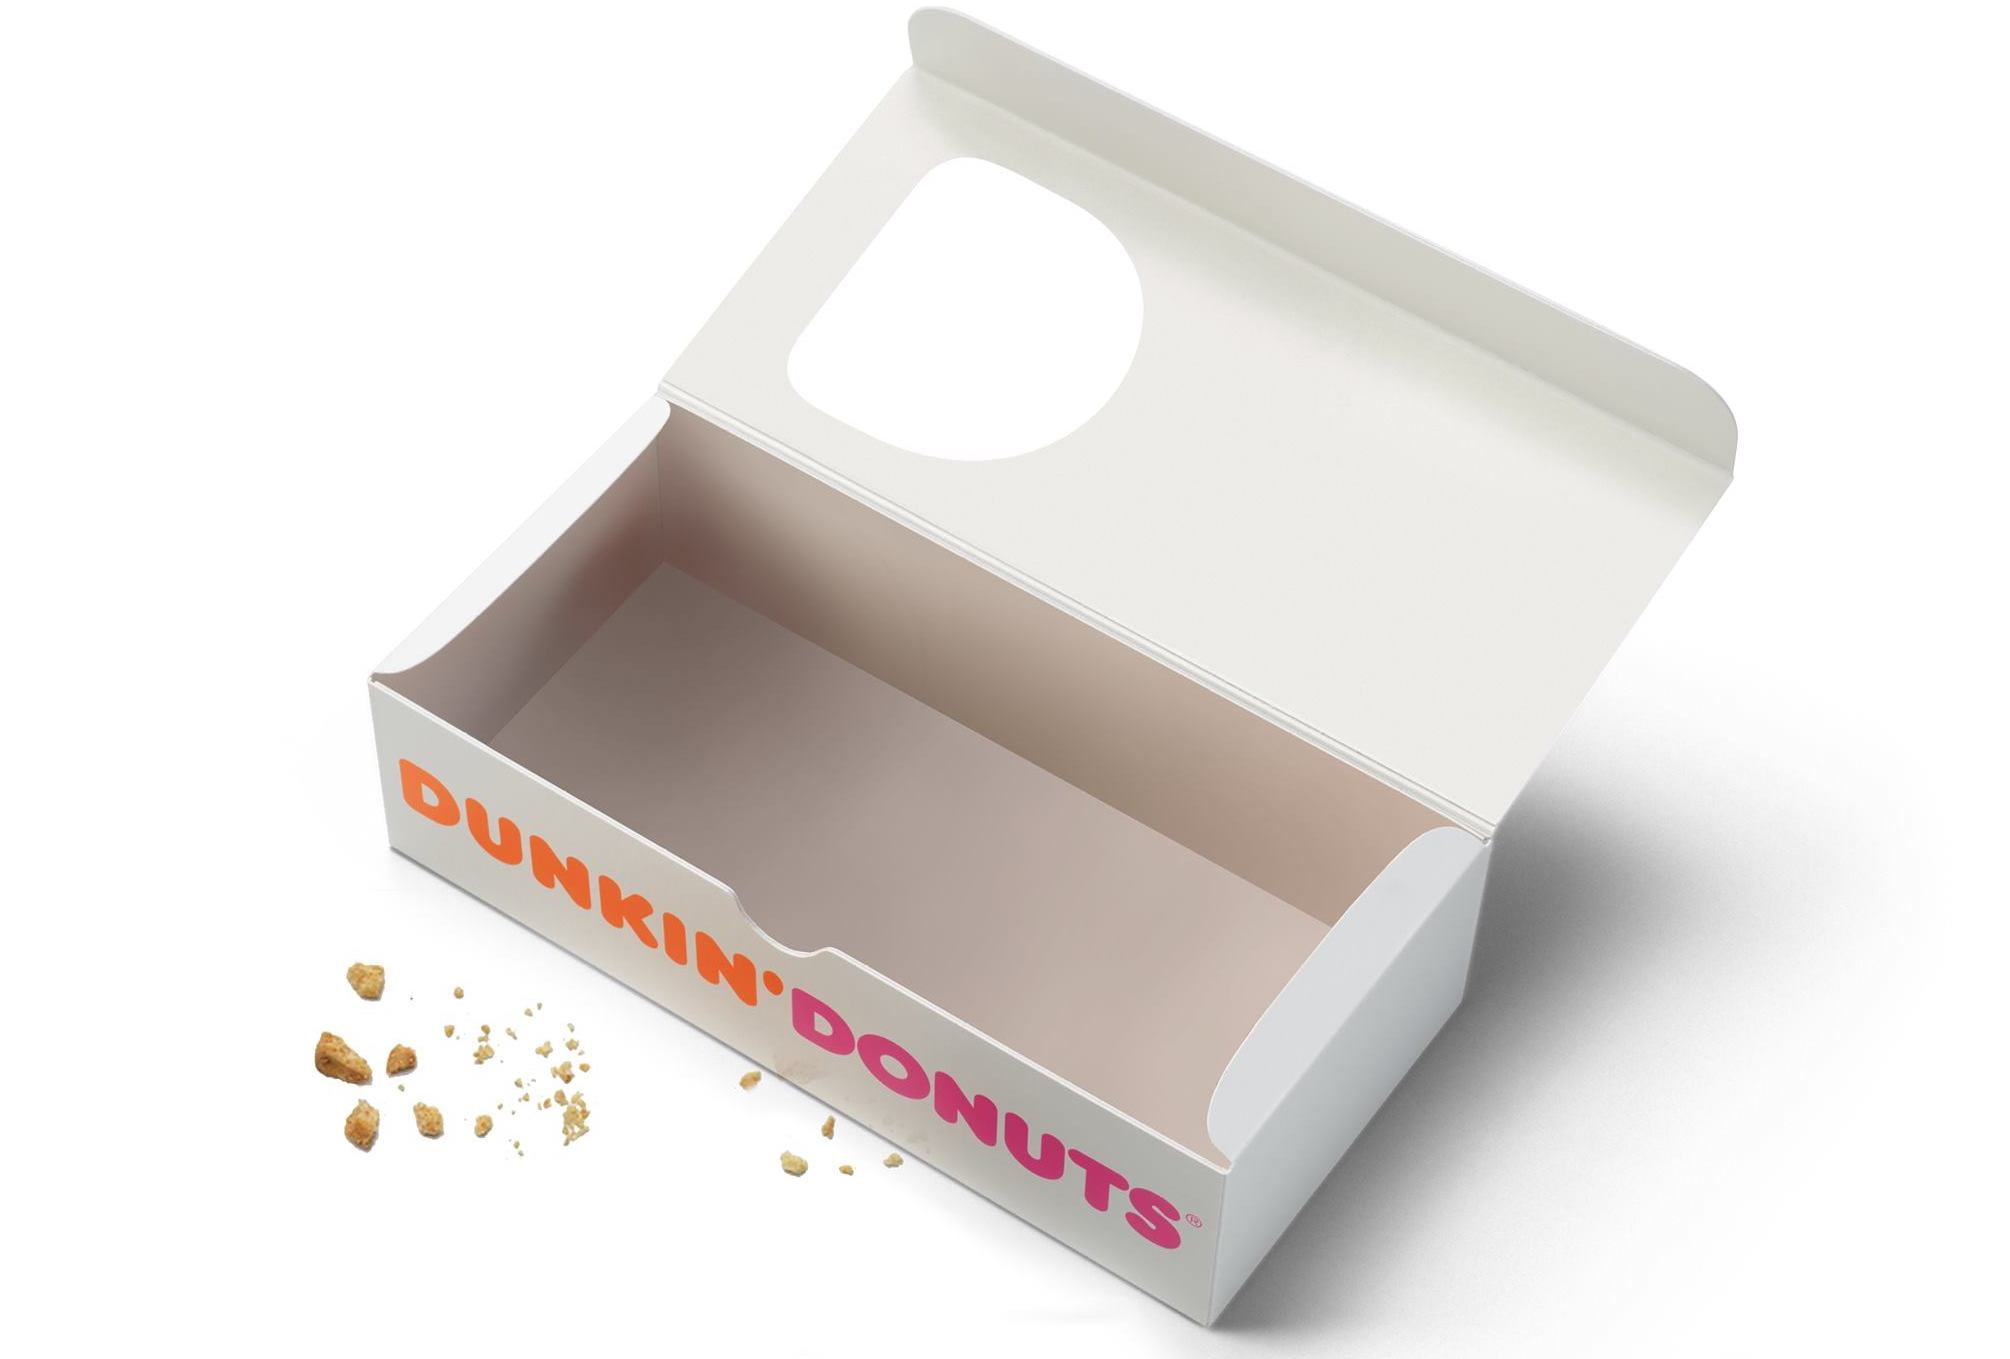 Dunkin: No dough, no donuts – not until Thursday